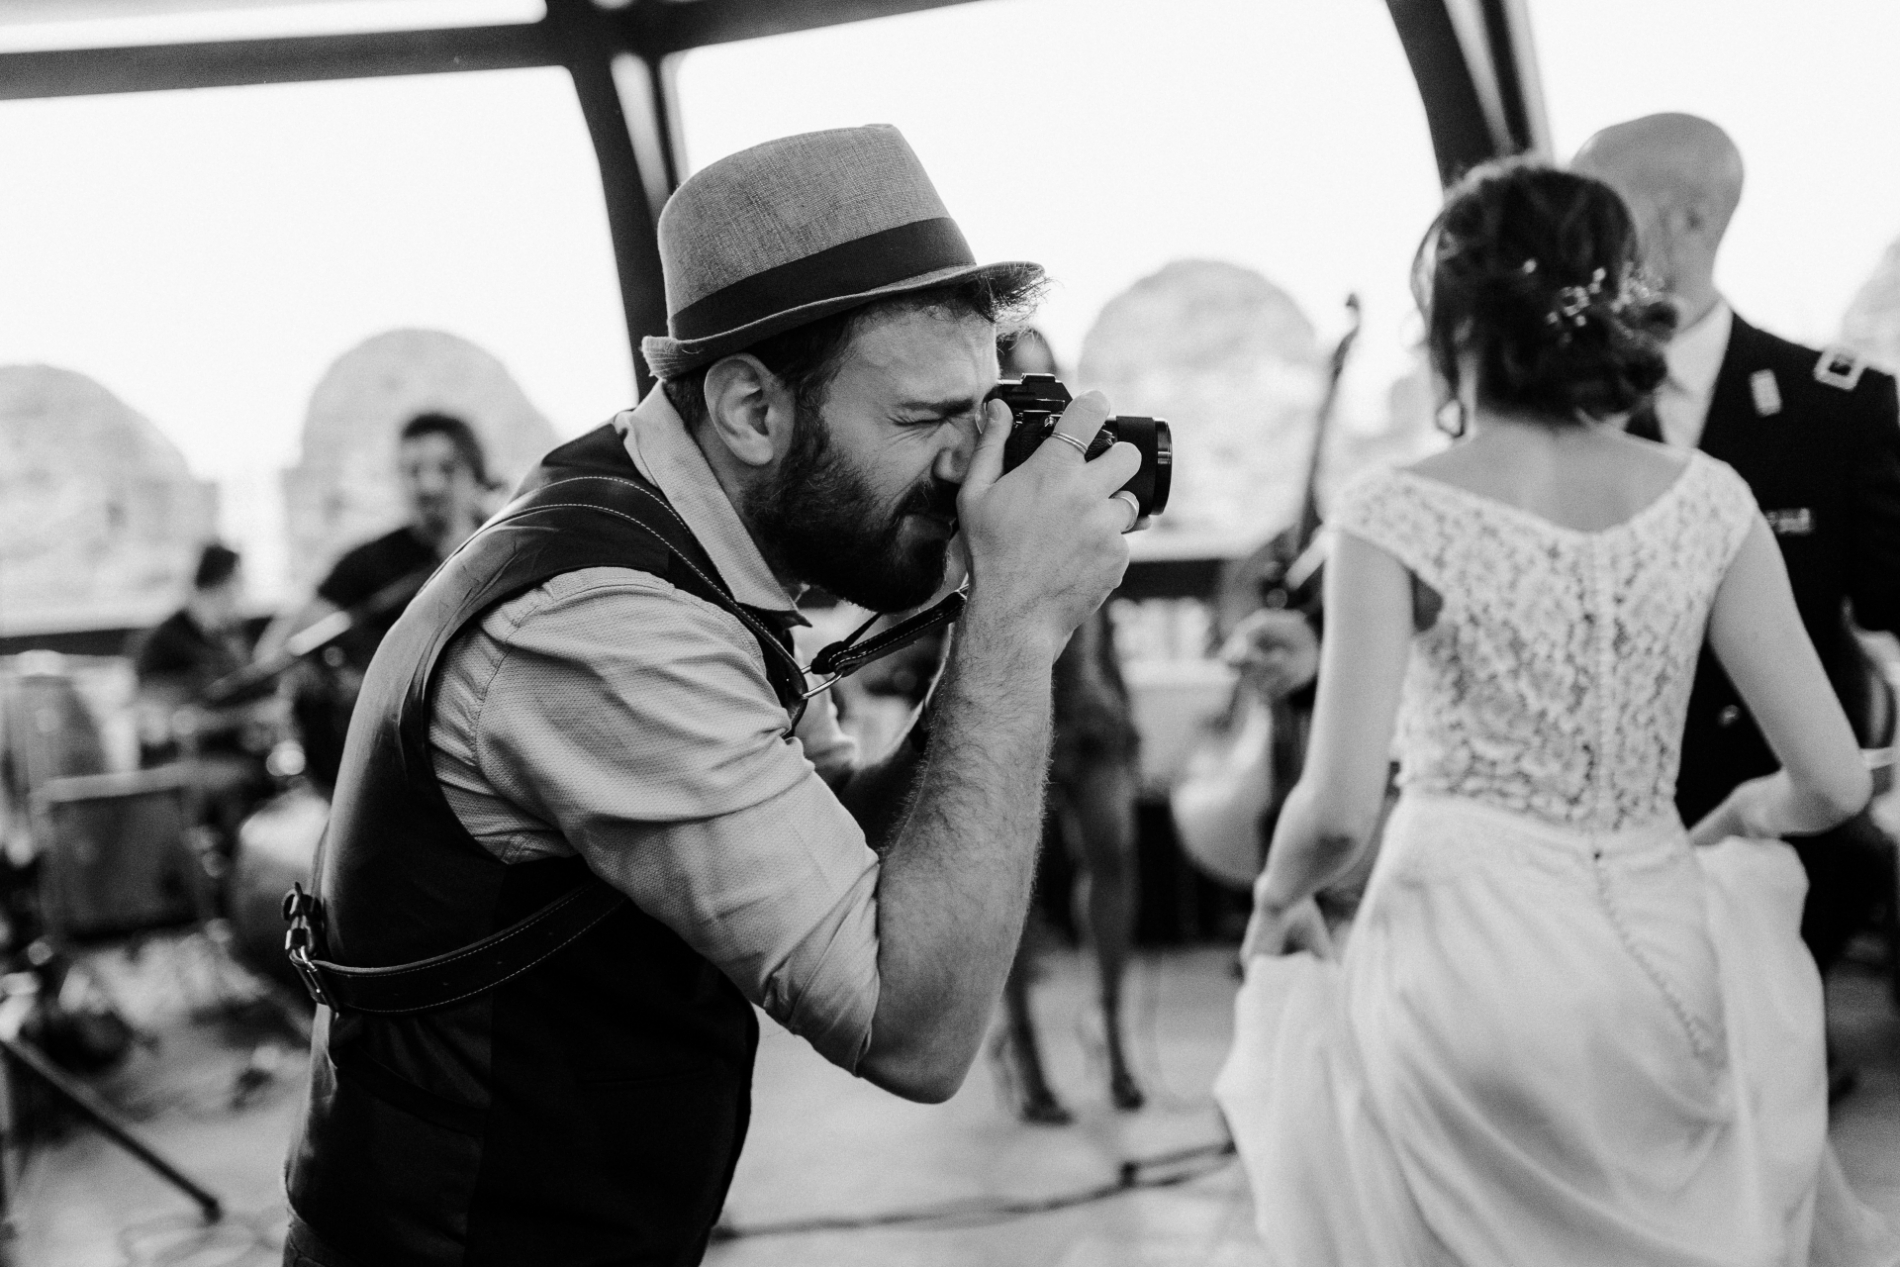 Image of a working Napoli documentary wedding photographer.